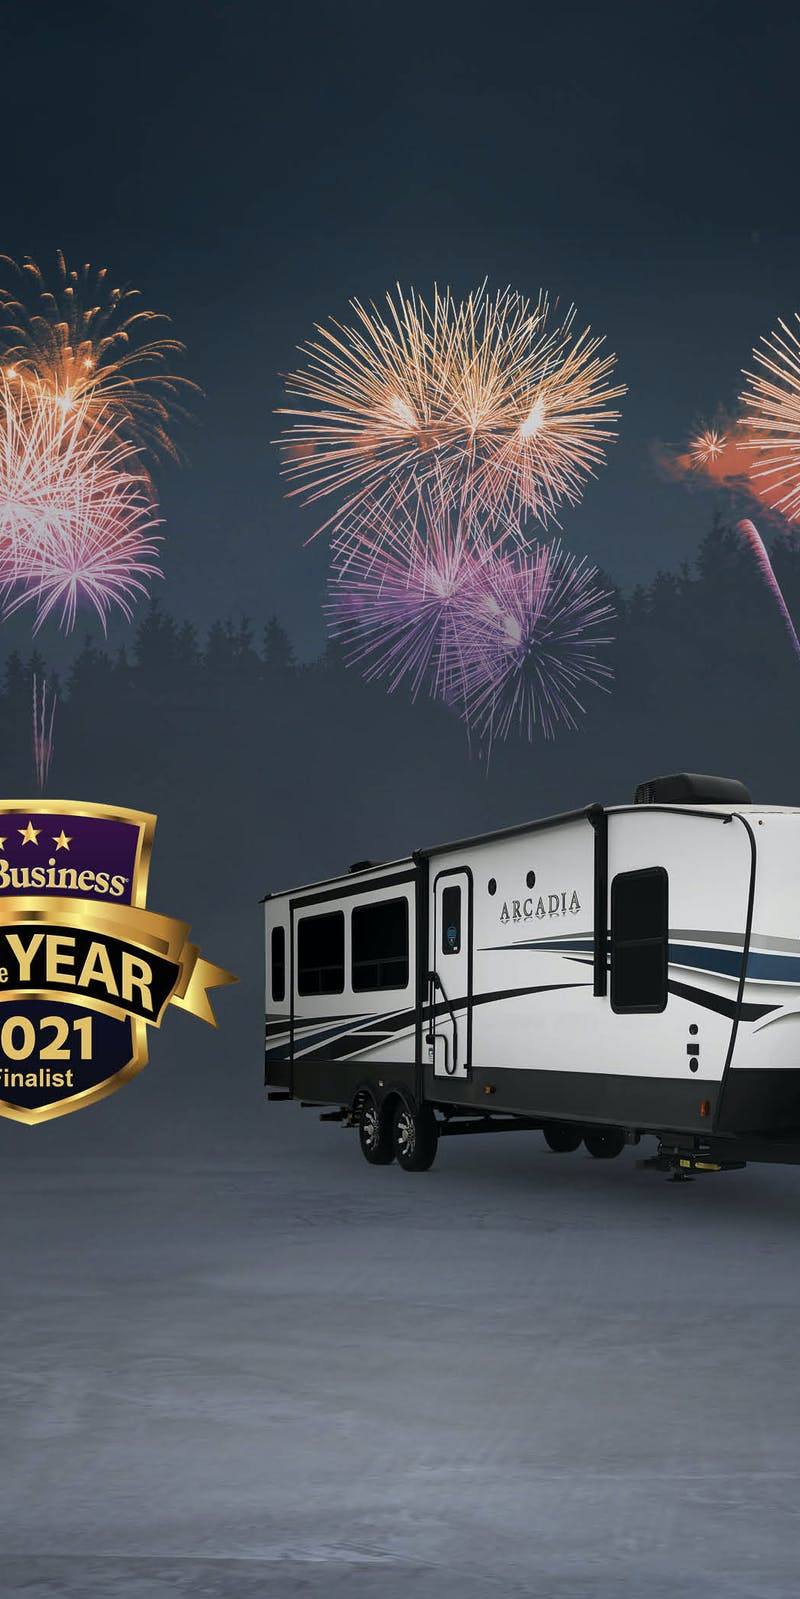 RV OF THE YEAR FINALIST!